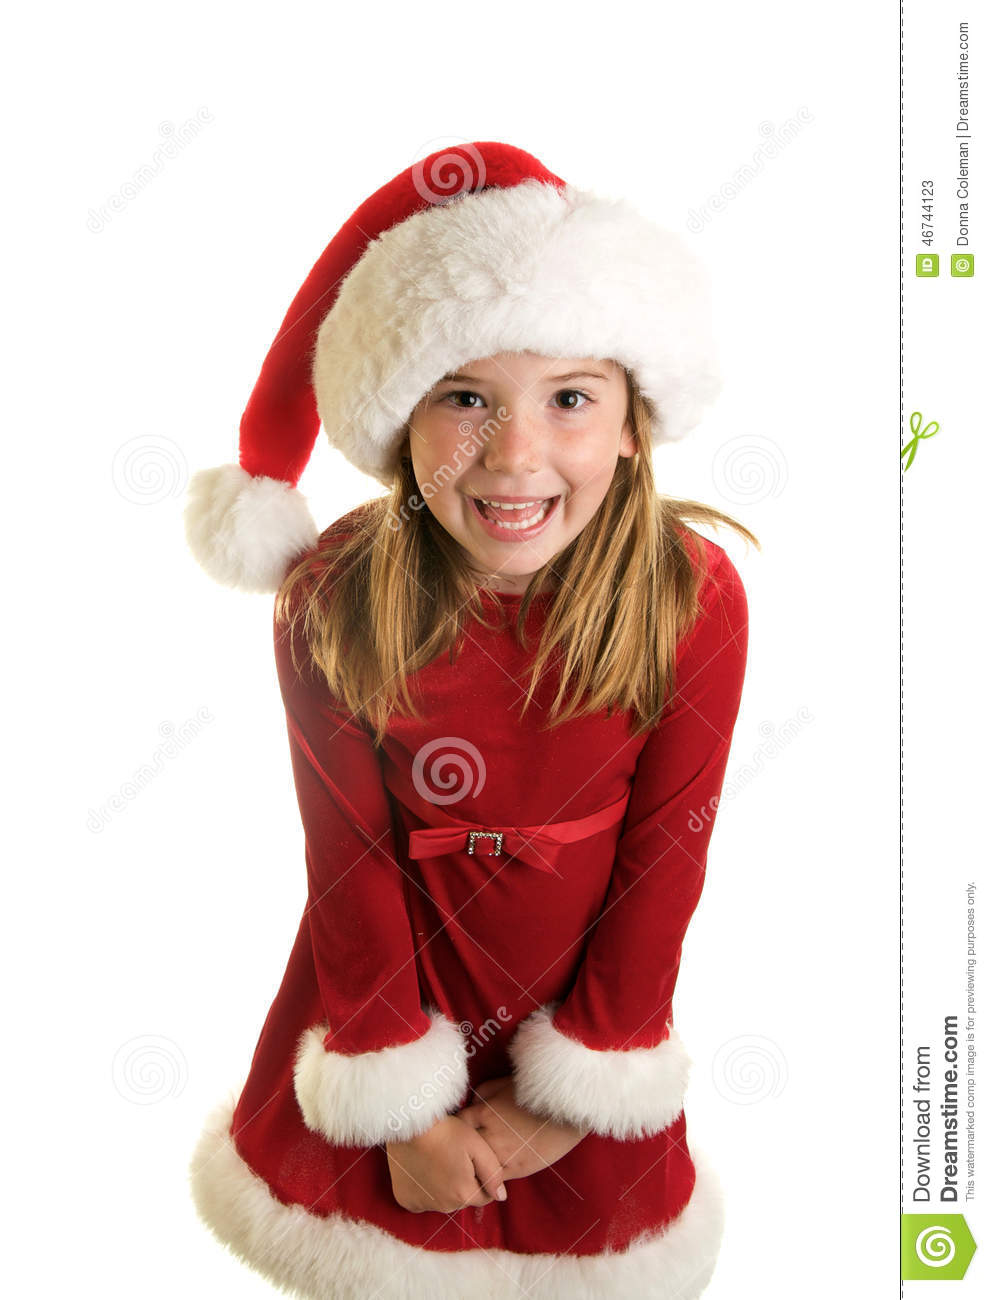 A Cute Little Girl In A Santa Claus Hat And Christmas Dress Stock